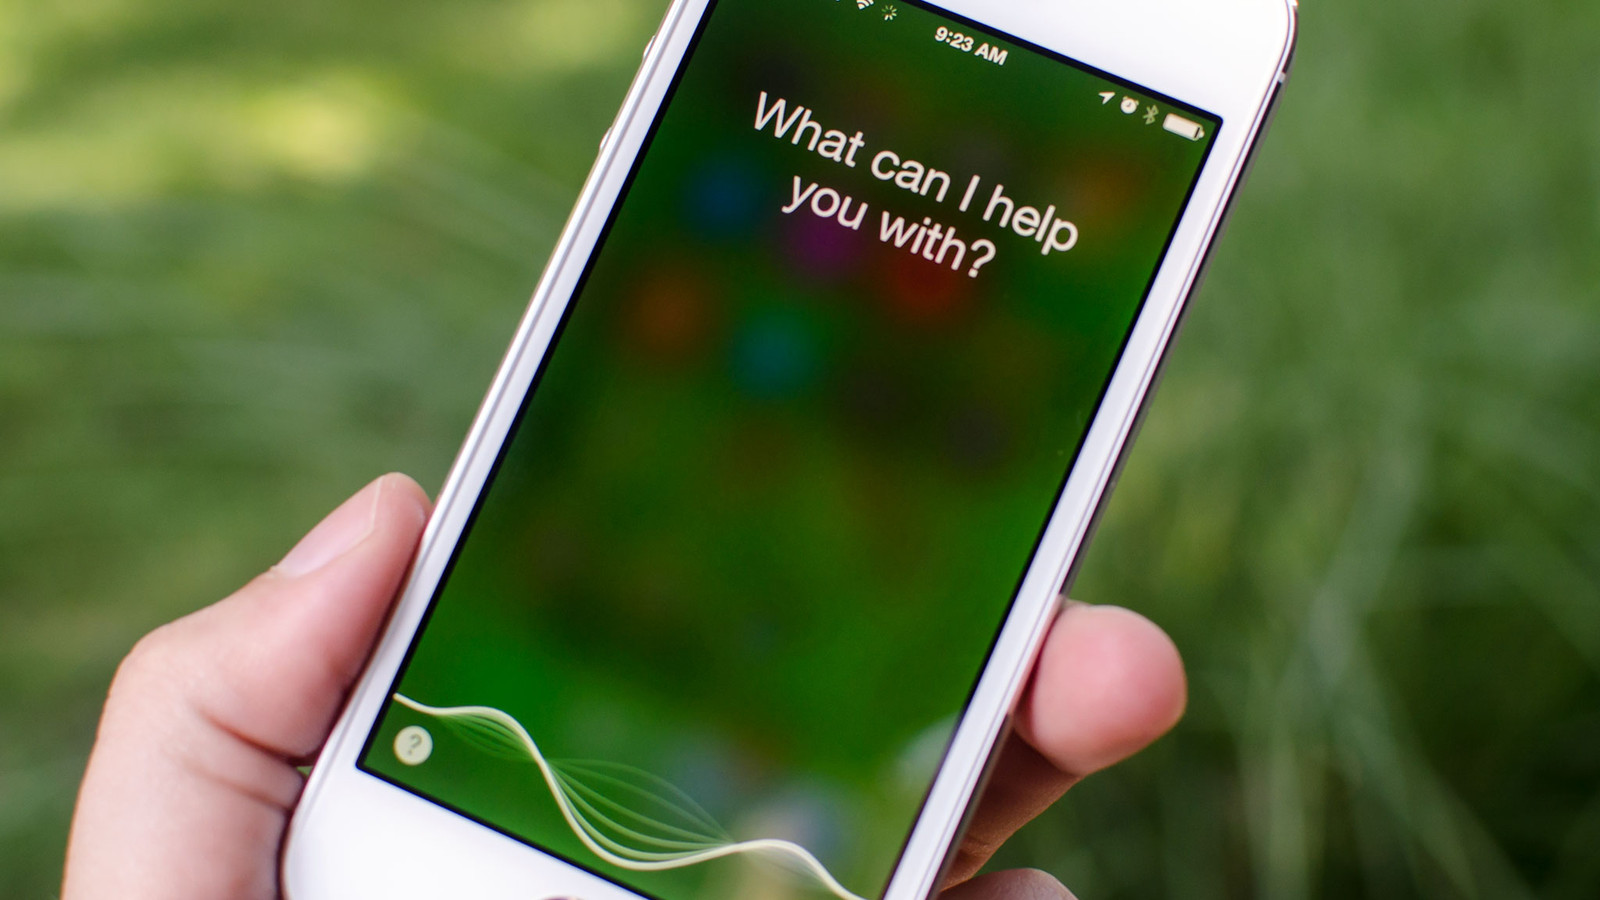 How to use Siri for iPhone and iPad: The ultimate guide